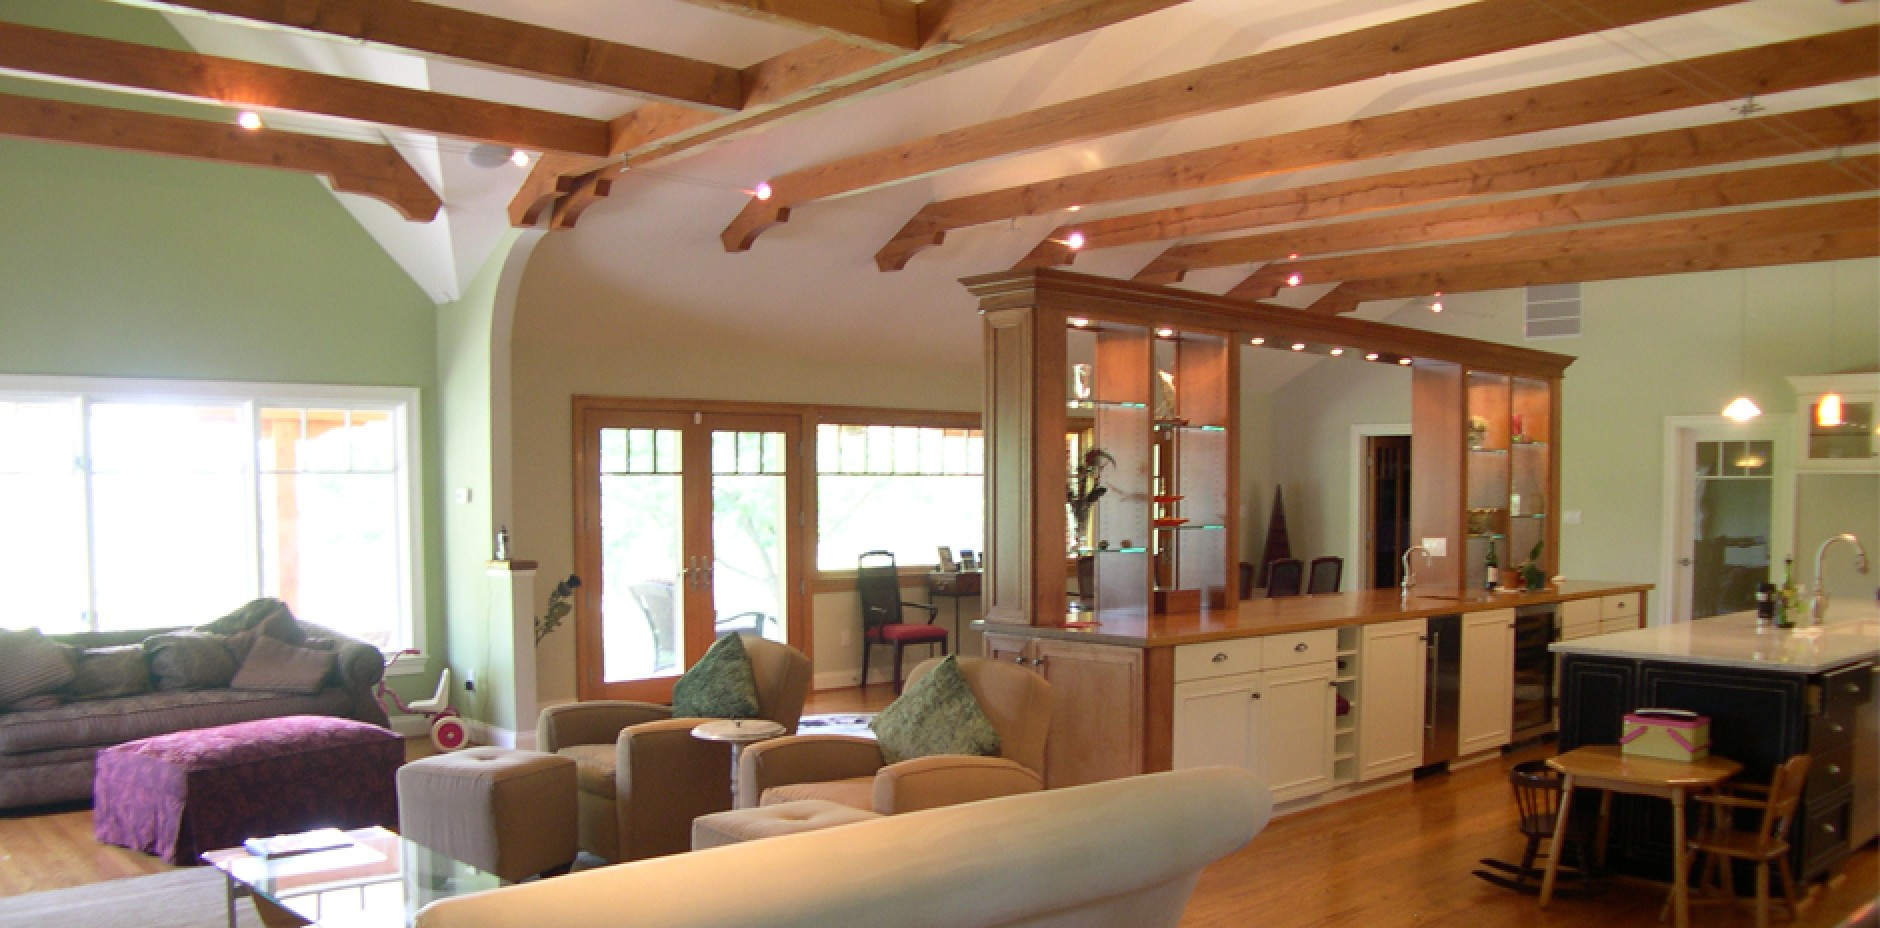 Open floorplan with beams commonwealth home design for Open beam house plans